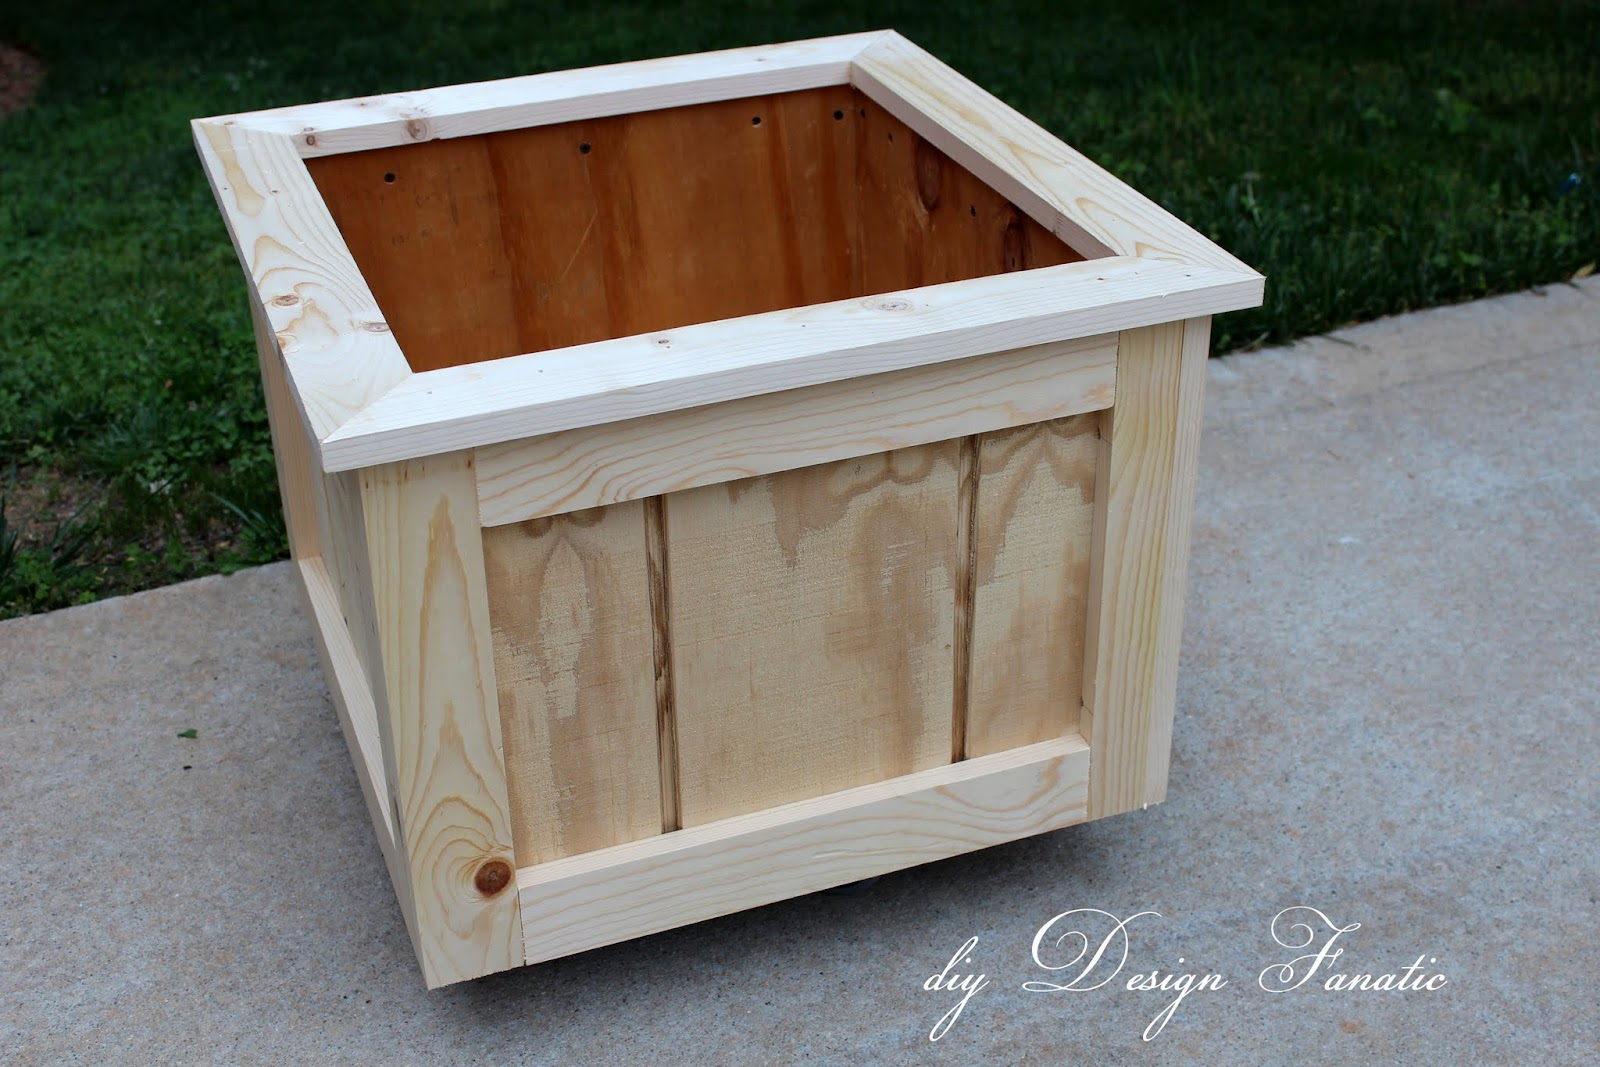 Diy design fanatic how to make a wood planter box for Garden planter plans